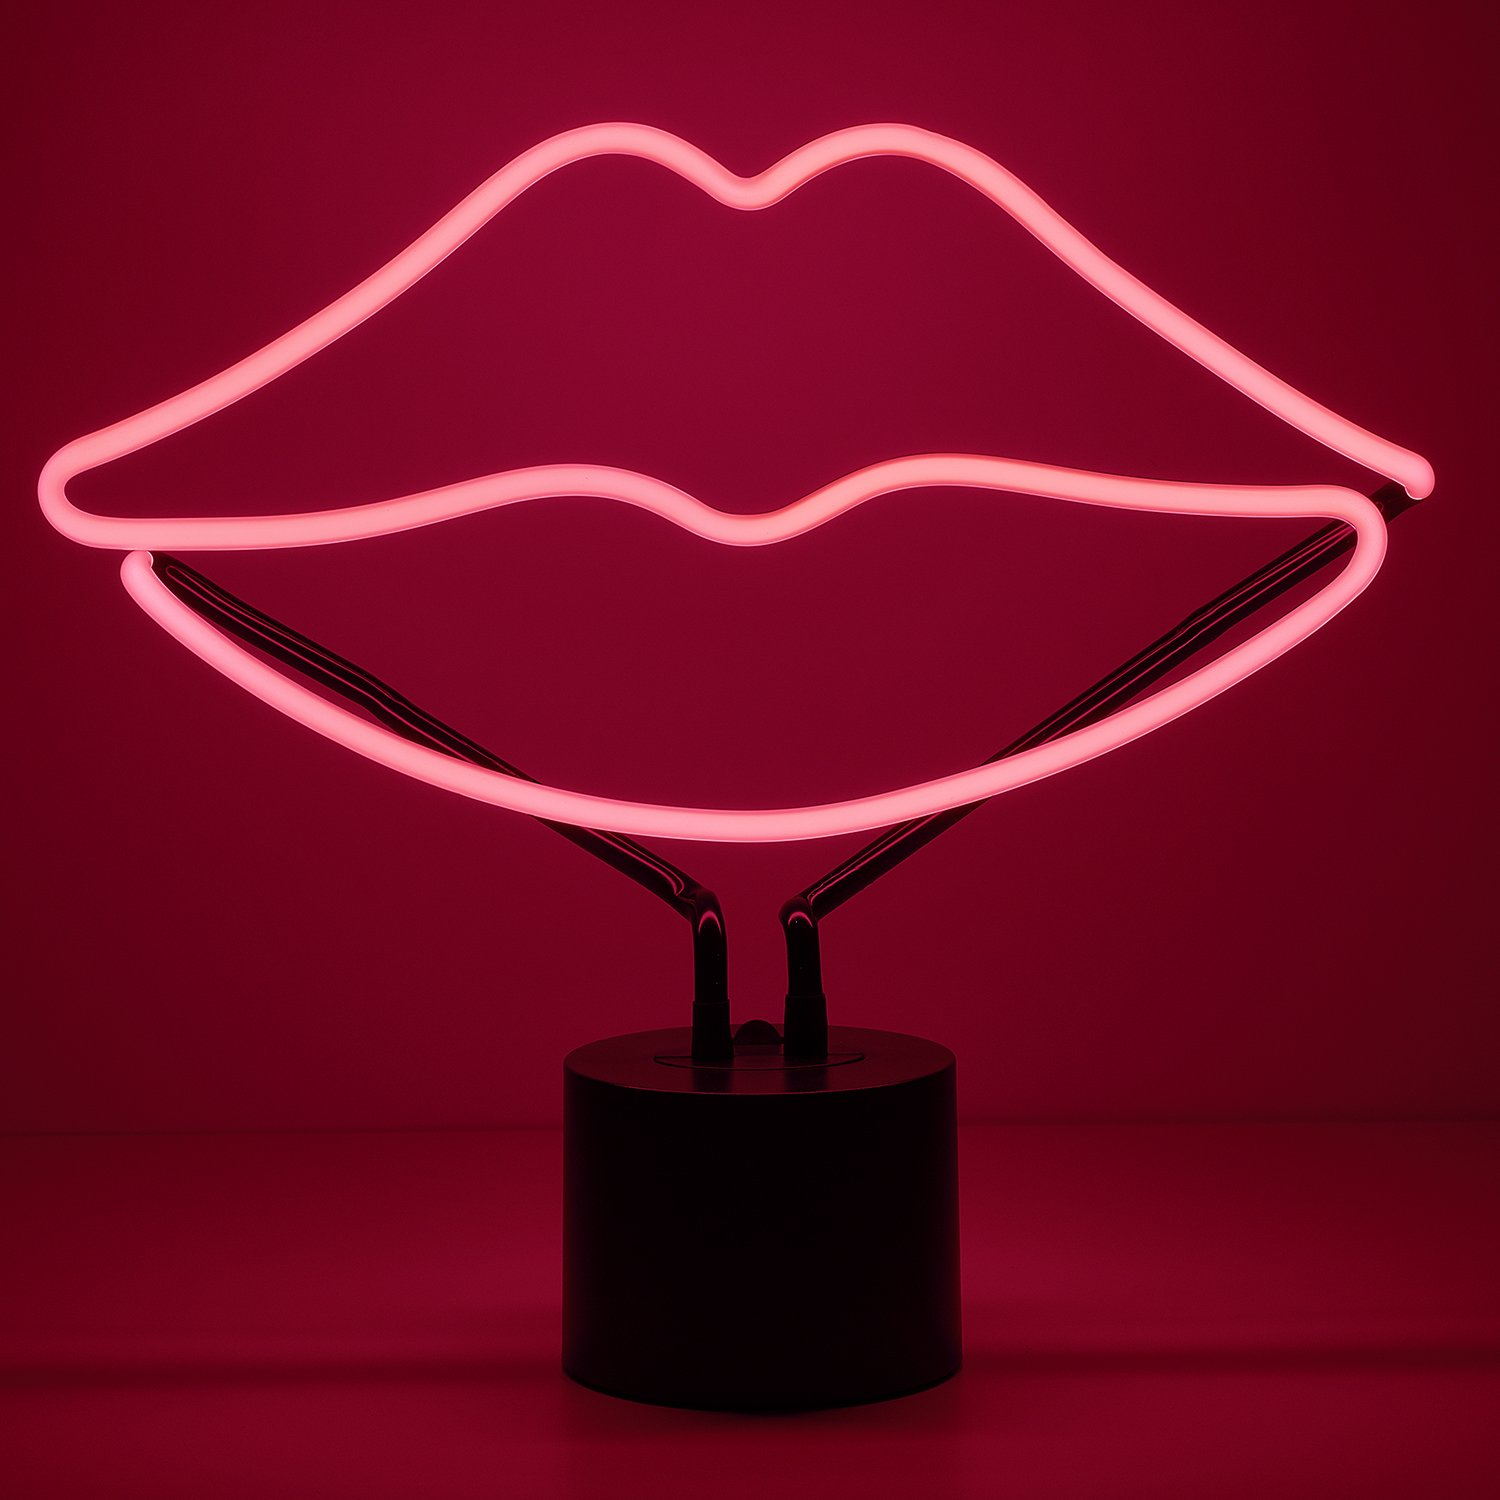 Large 12 x 13.5 inches Amped /& Co Lips Neon Desk Light Real Neon Home Decor Neon Signs For Unique Rooms Pink